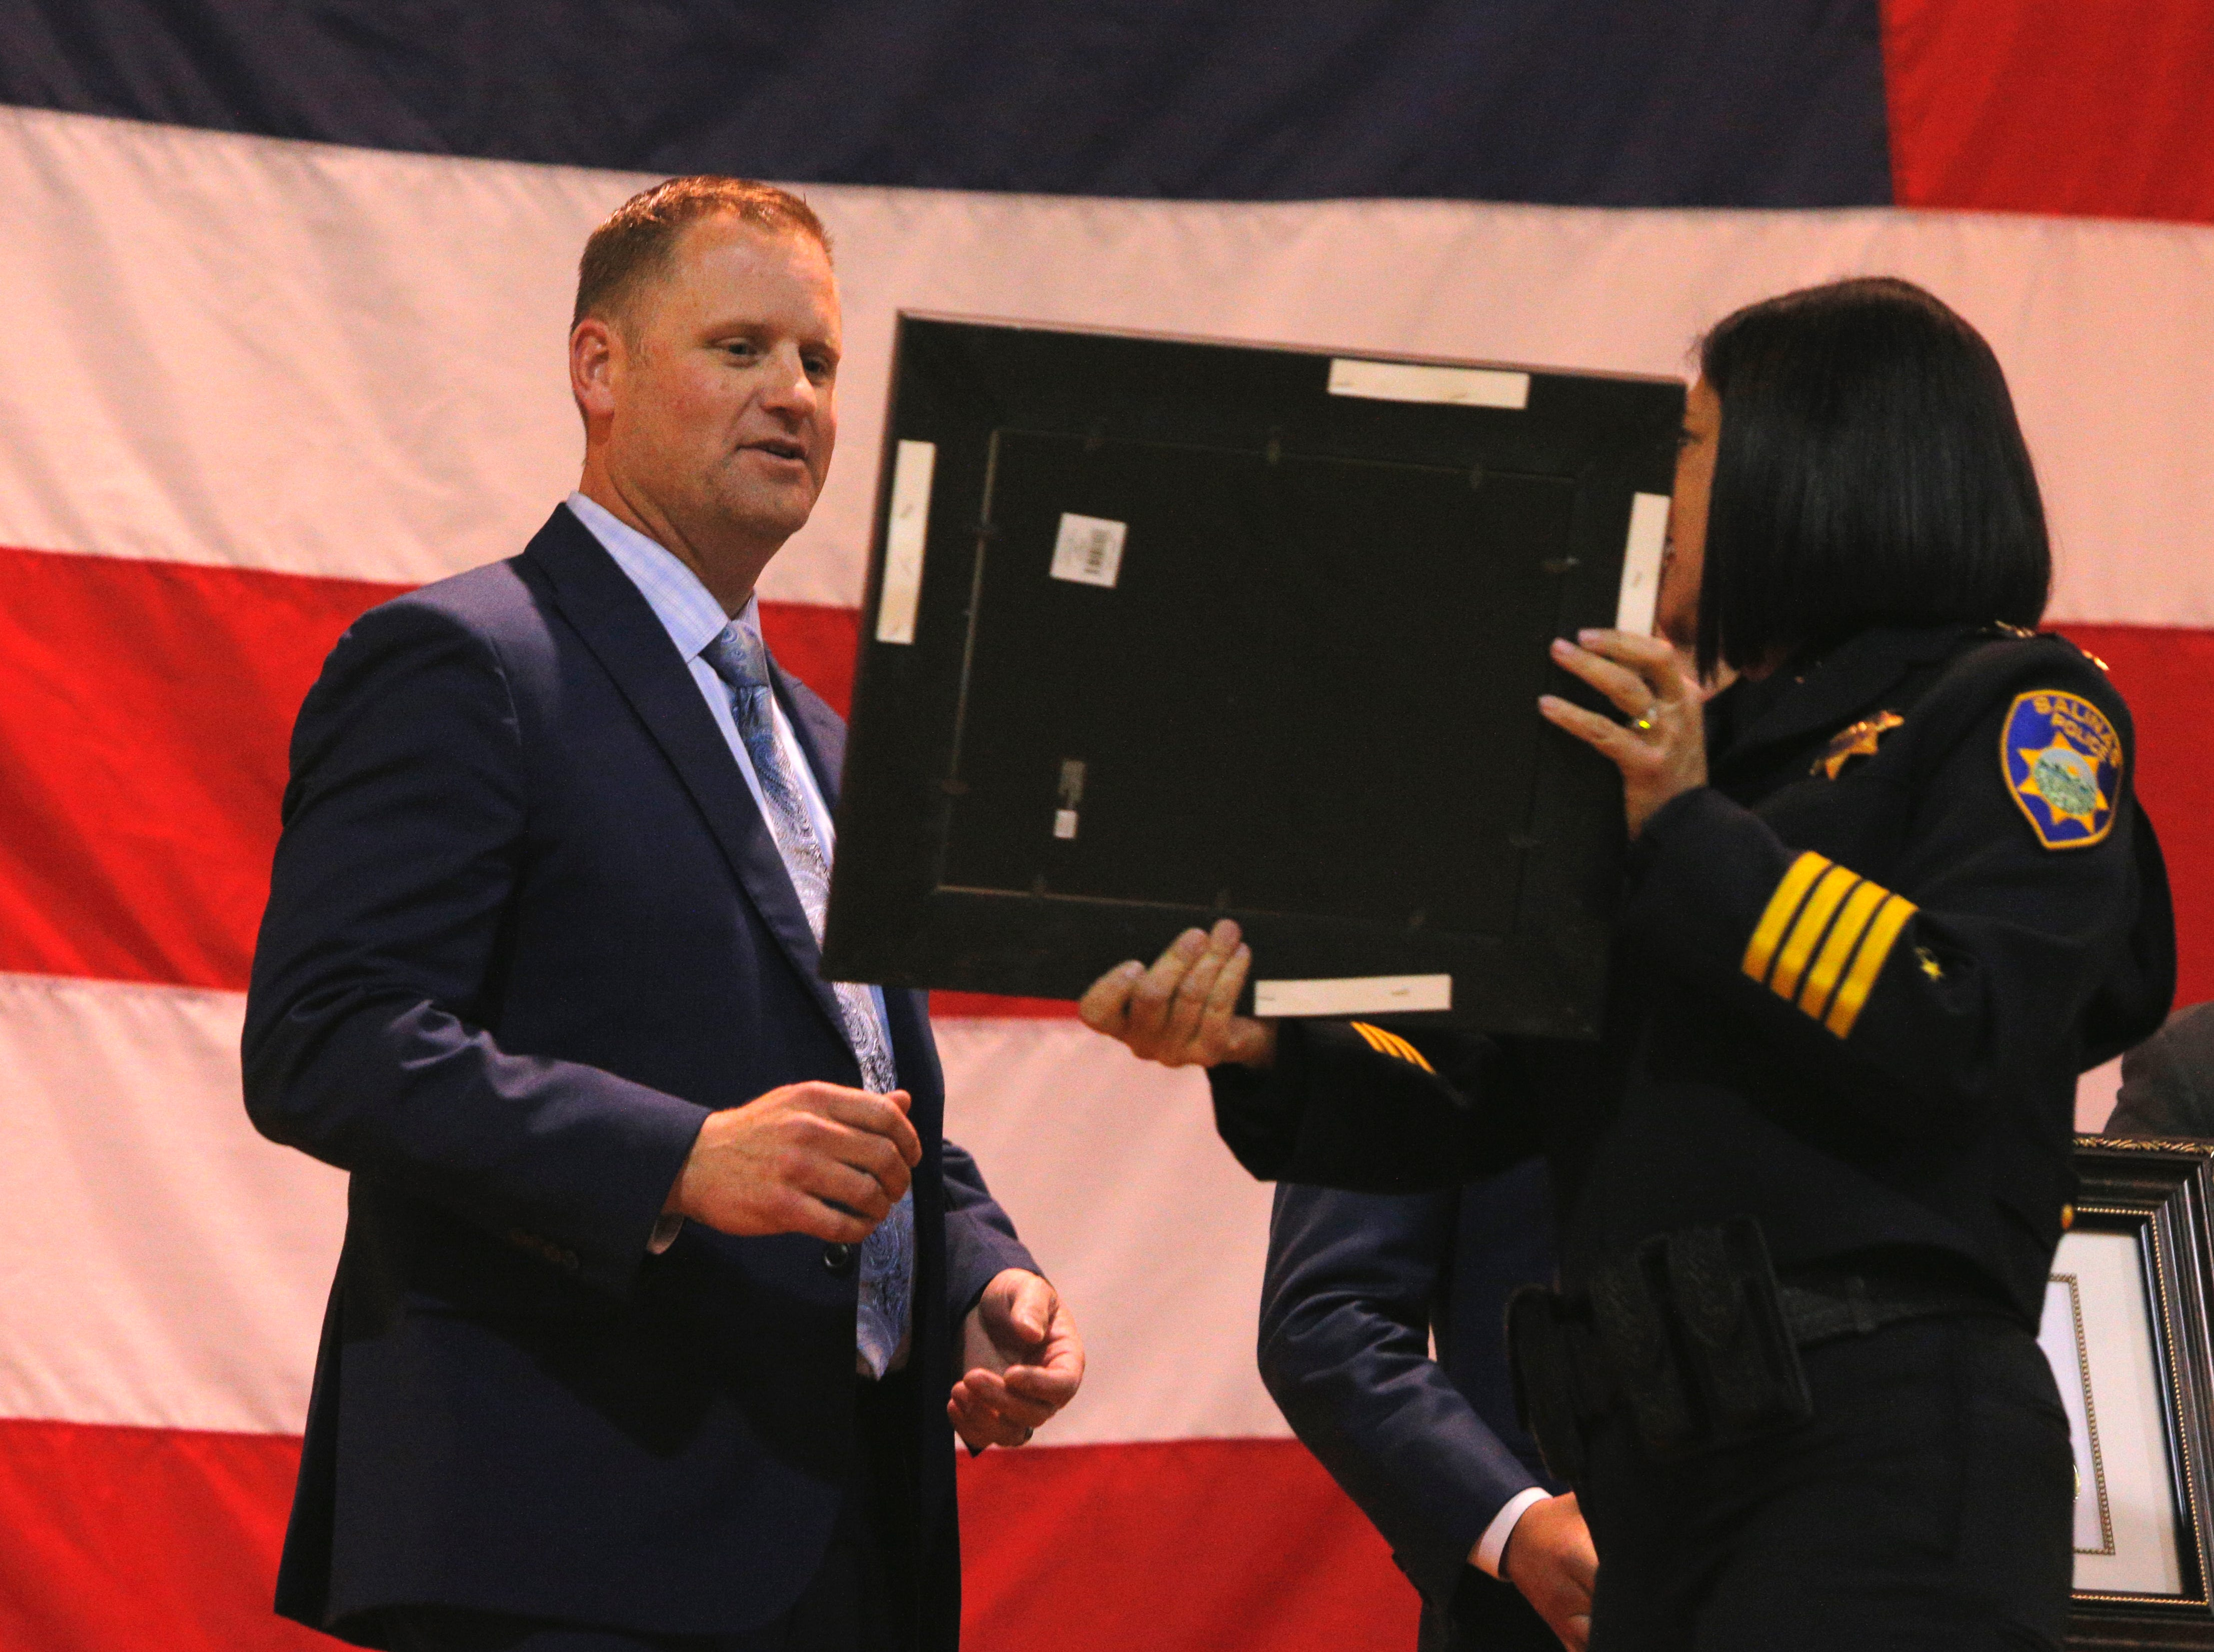 Salinas police Sgt. Dale Fors is shown a certificate honoring him with the department's medal of valor March 14, 2019, at the Salinas Police Department's 2018 awards ceremony.